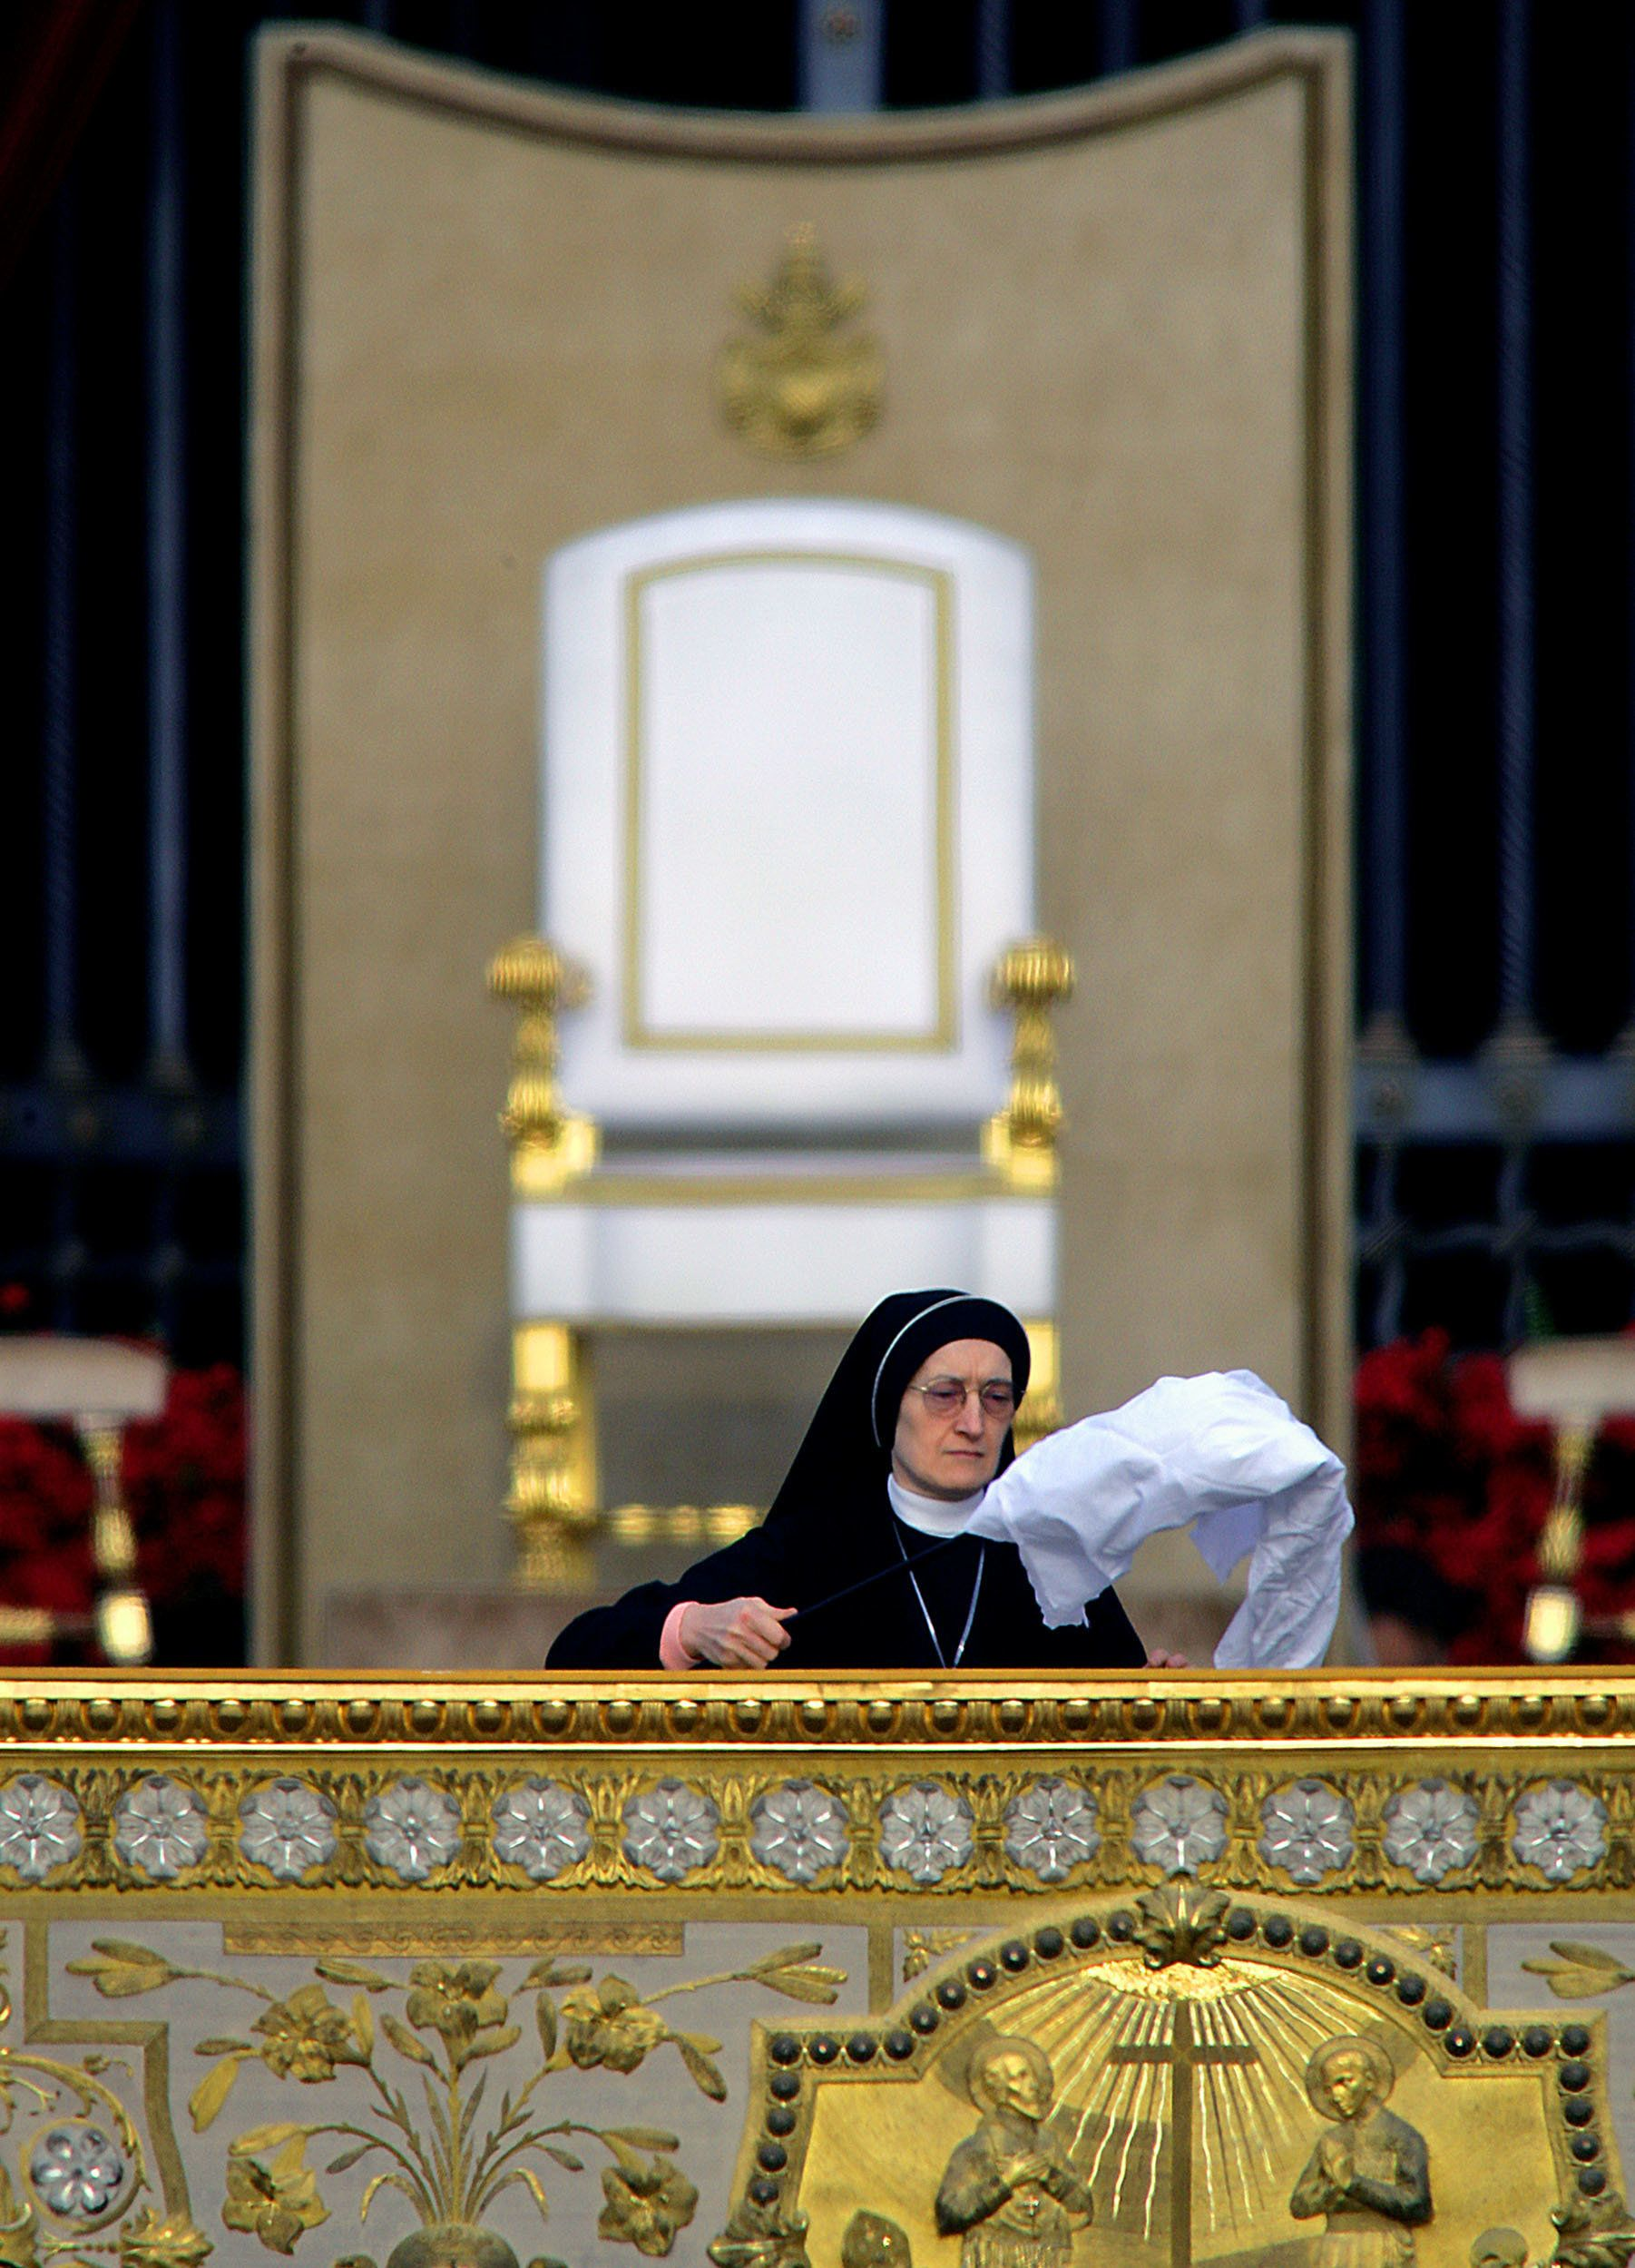 A nun cleans the main altar as the Pope's empty white chair is seen in the background before the start of the first mass of German Pope Benedict XVI at Saint Peter's Square in the Vatican April 24, 2005. REUTERS/Max Rossi  MR/JJ